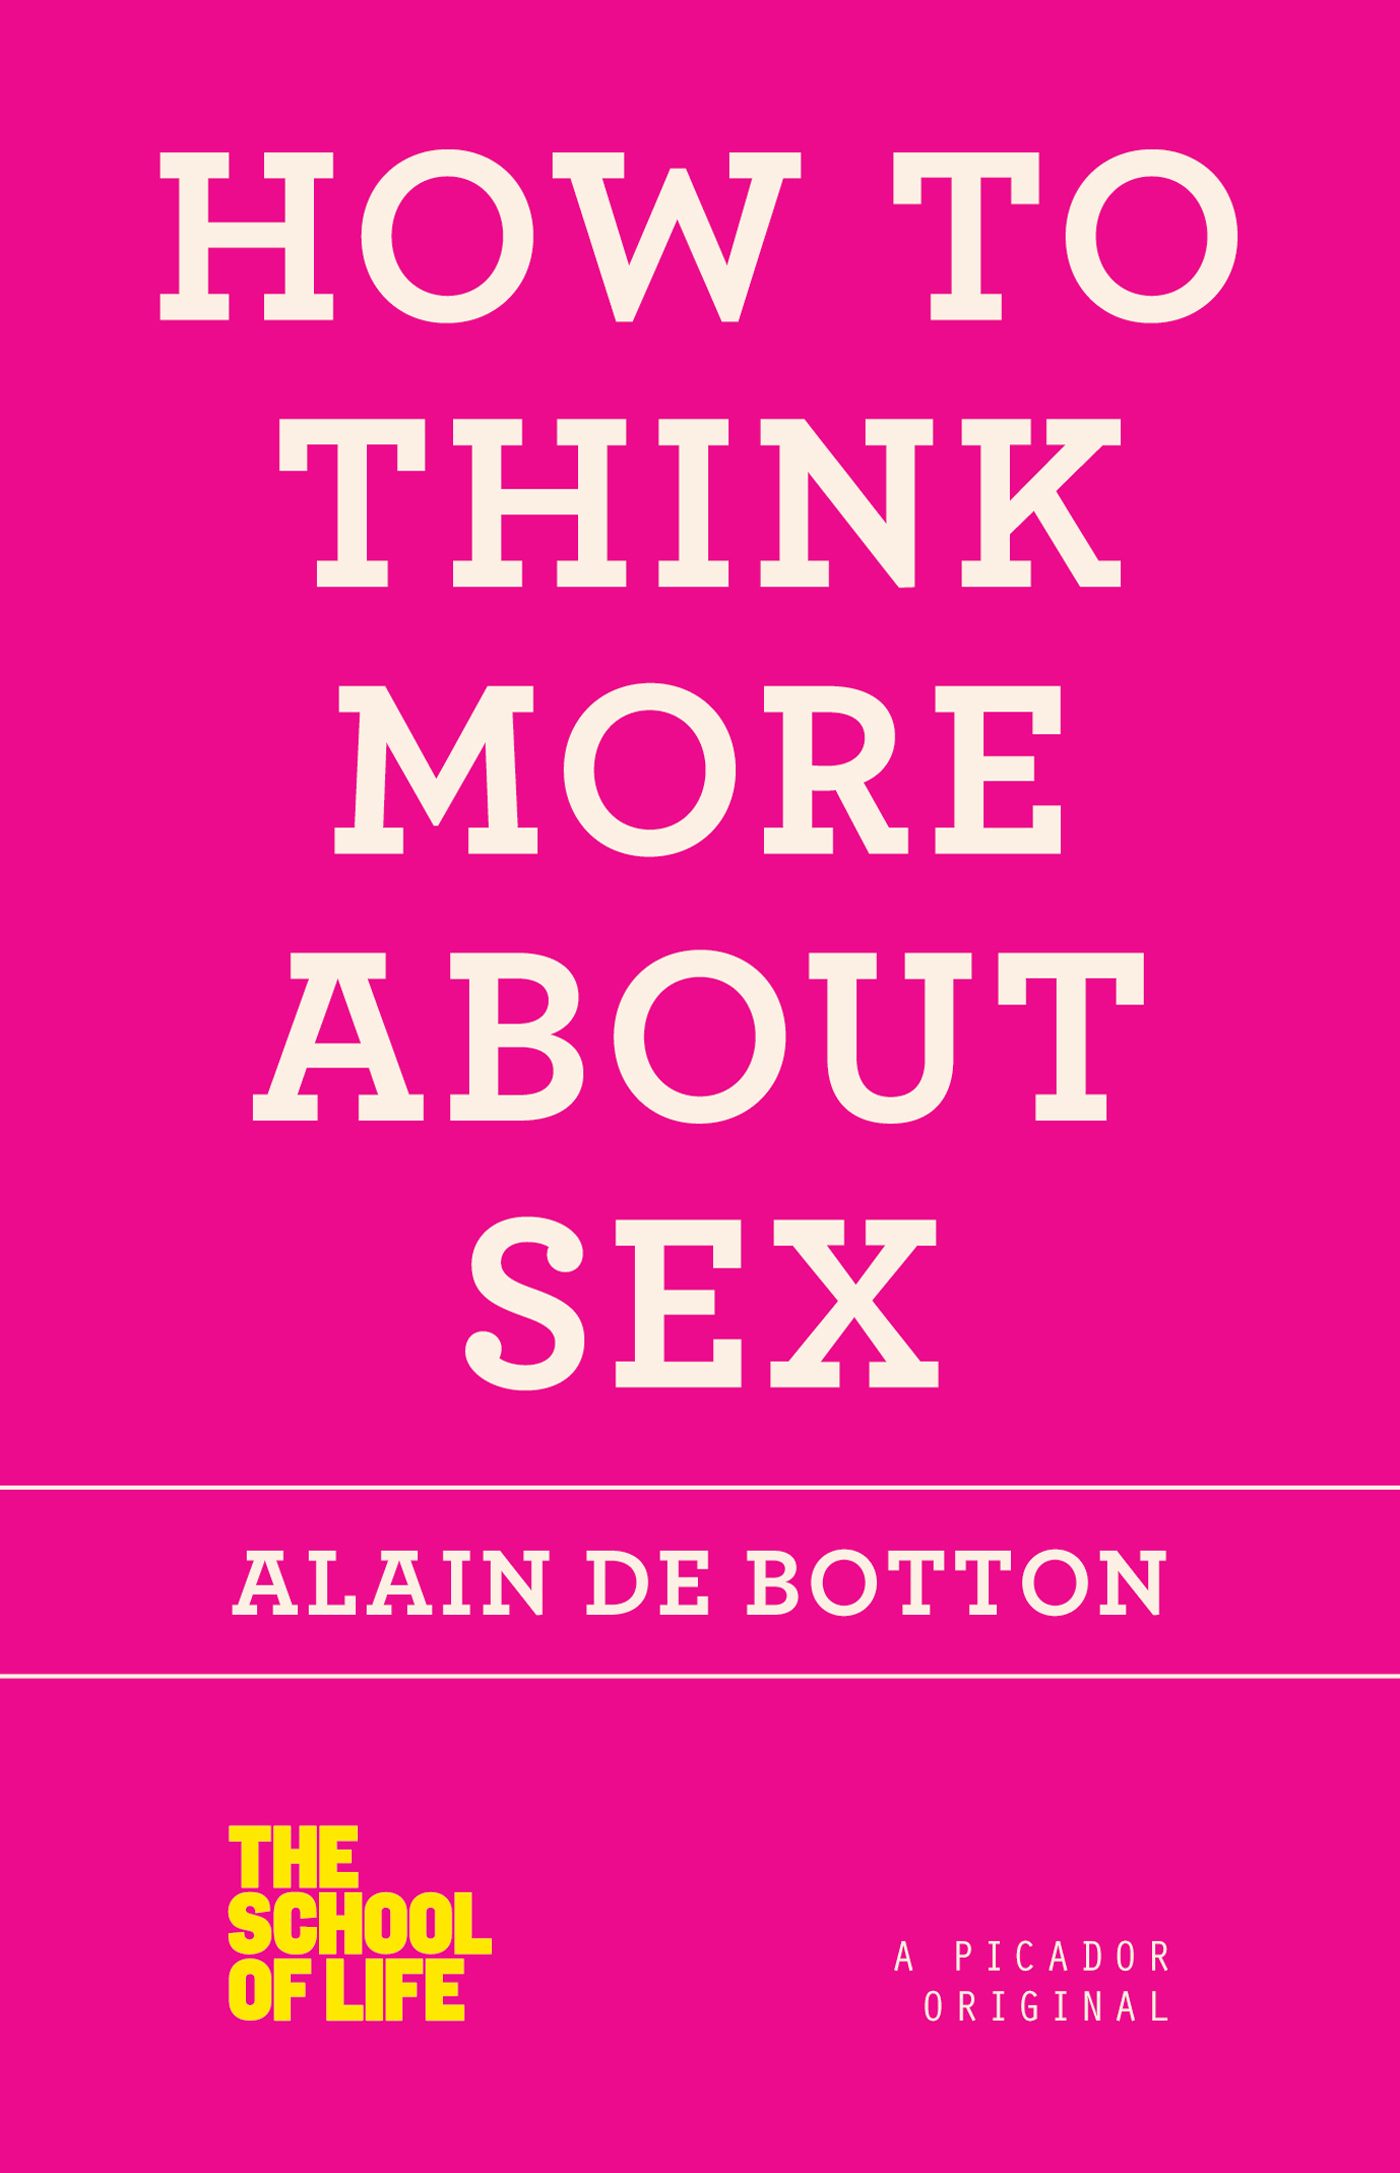 How To Think More About Sex – Alain De Botton